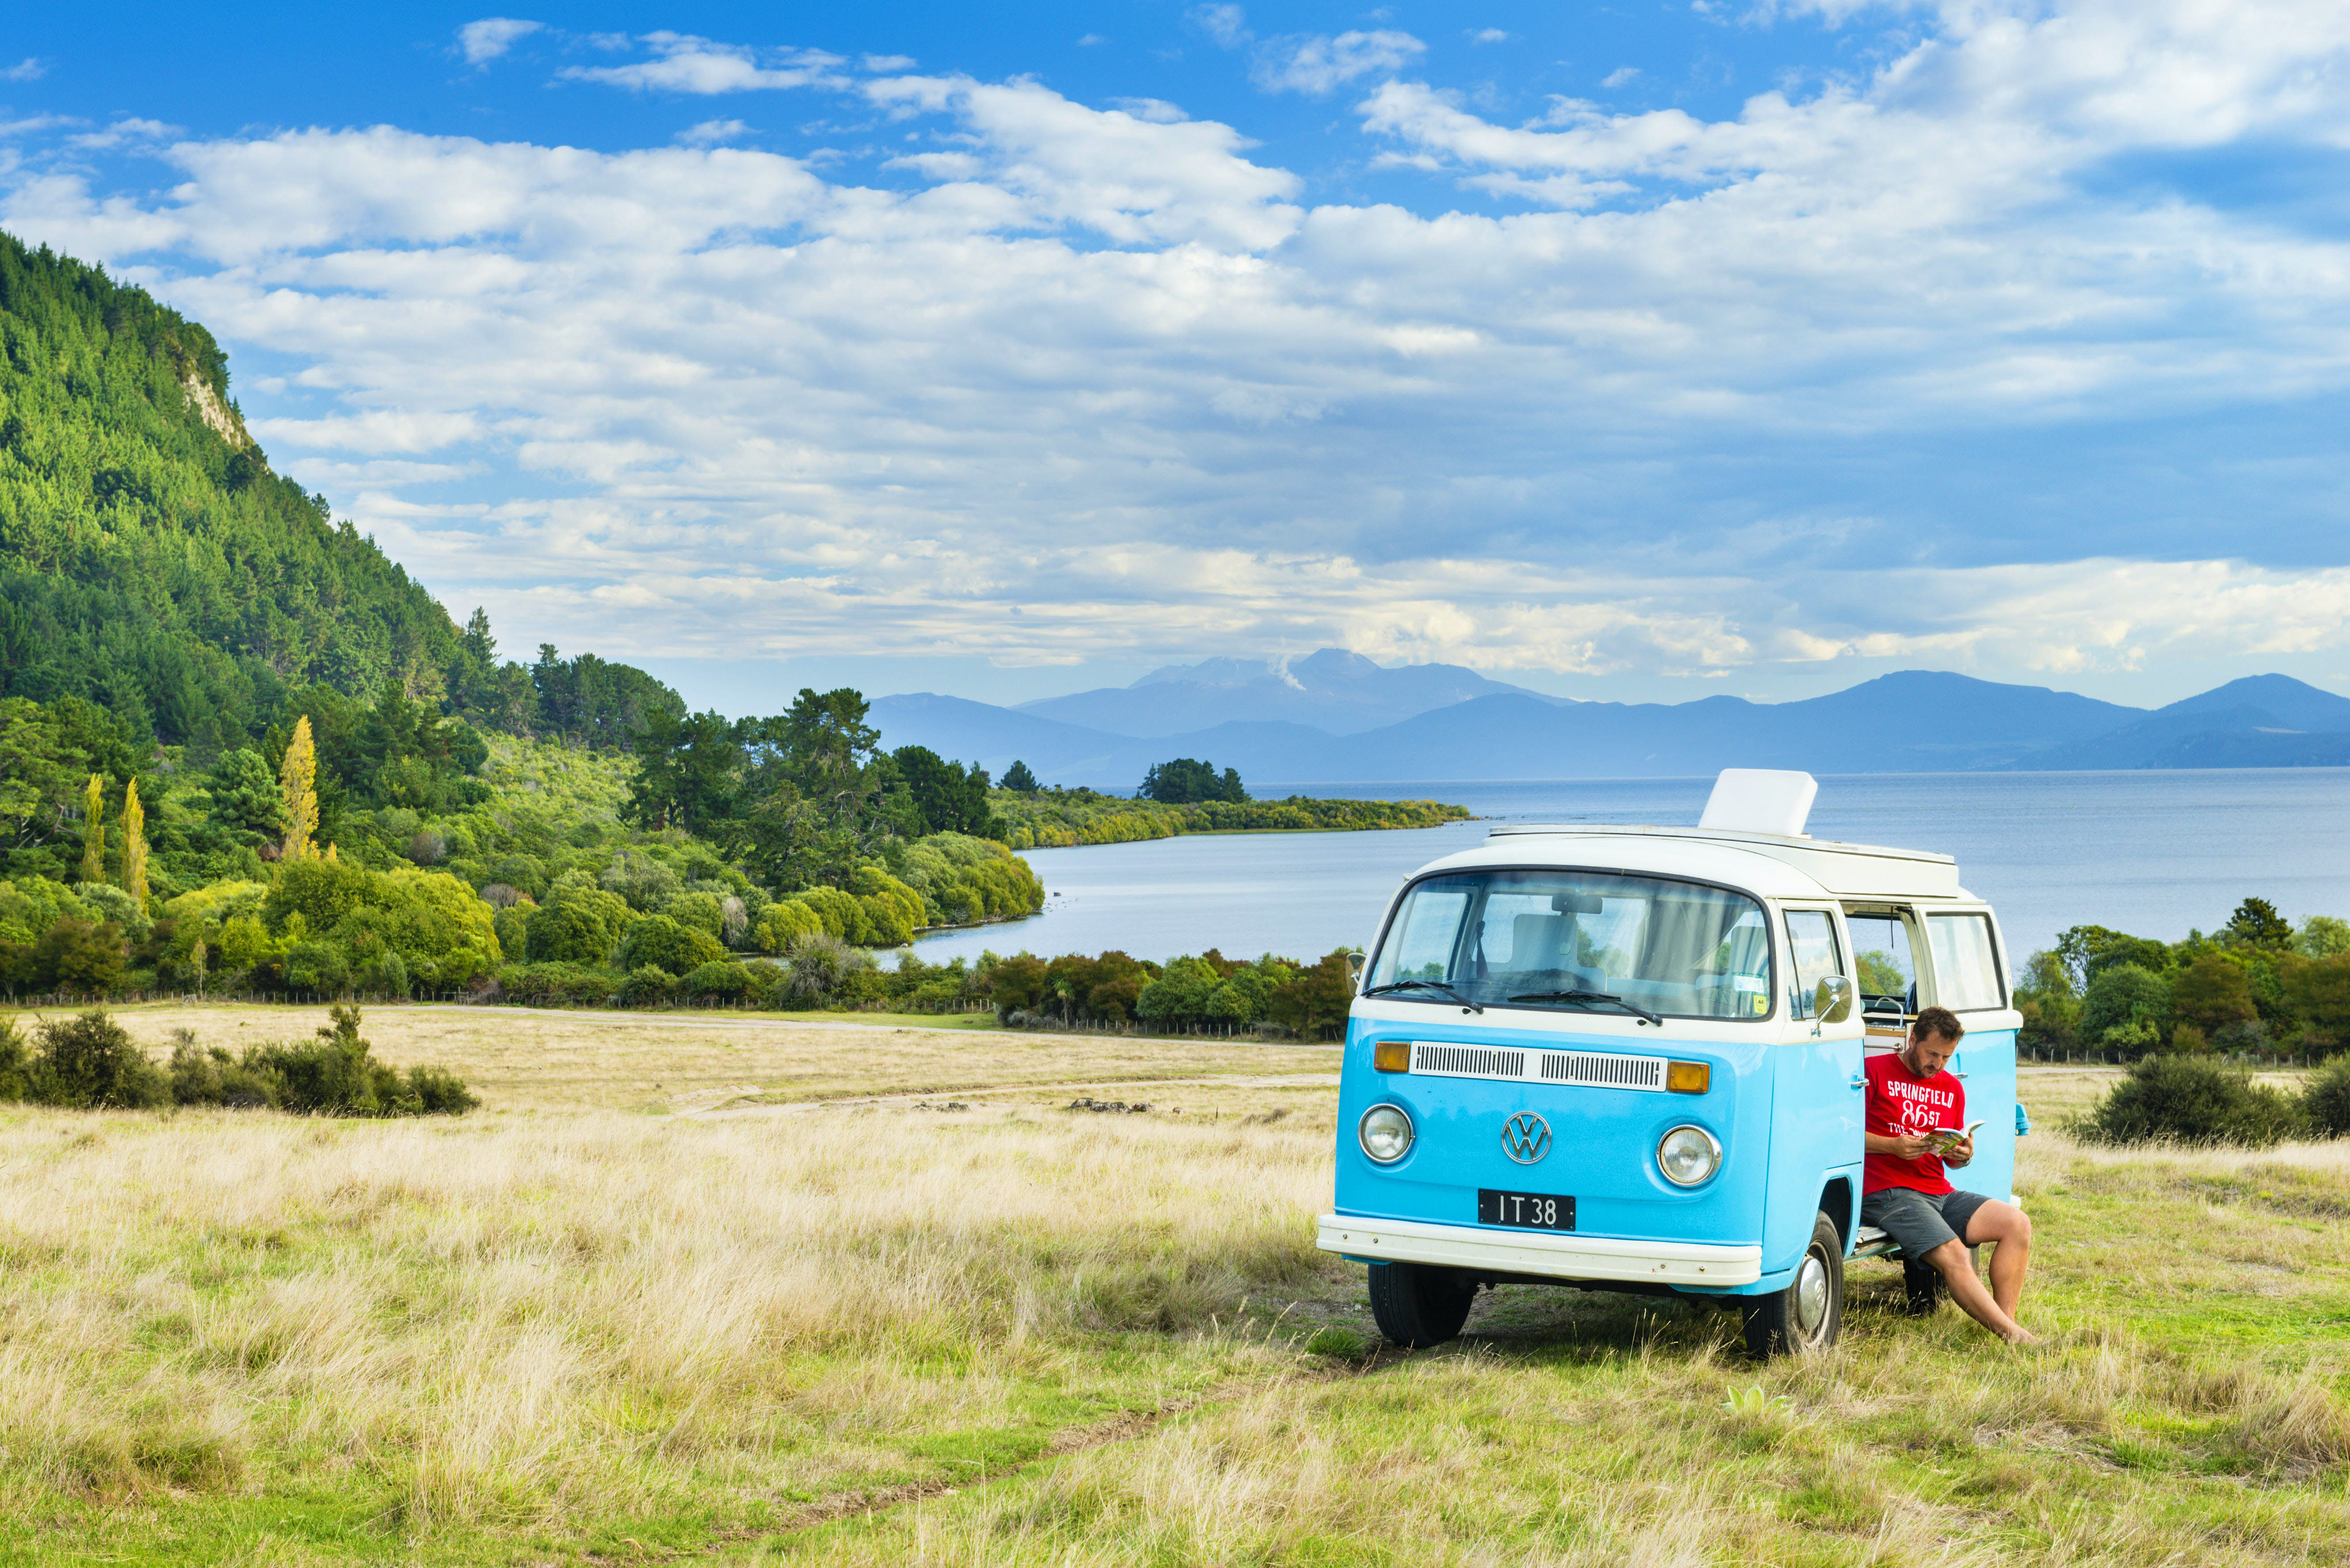 A man in a red T-shirt is sitting in the open door of a bright blue VW campervan reading. The can is parked on grassy terrain beside a beautiful lake lined with green trees.